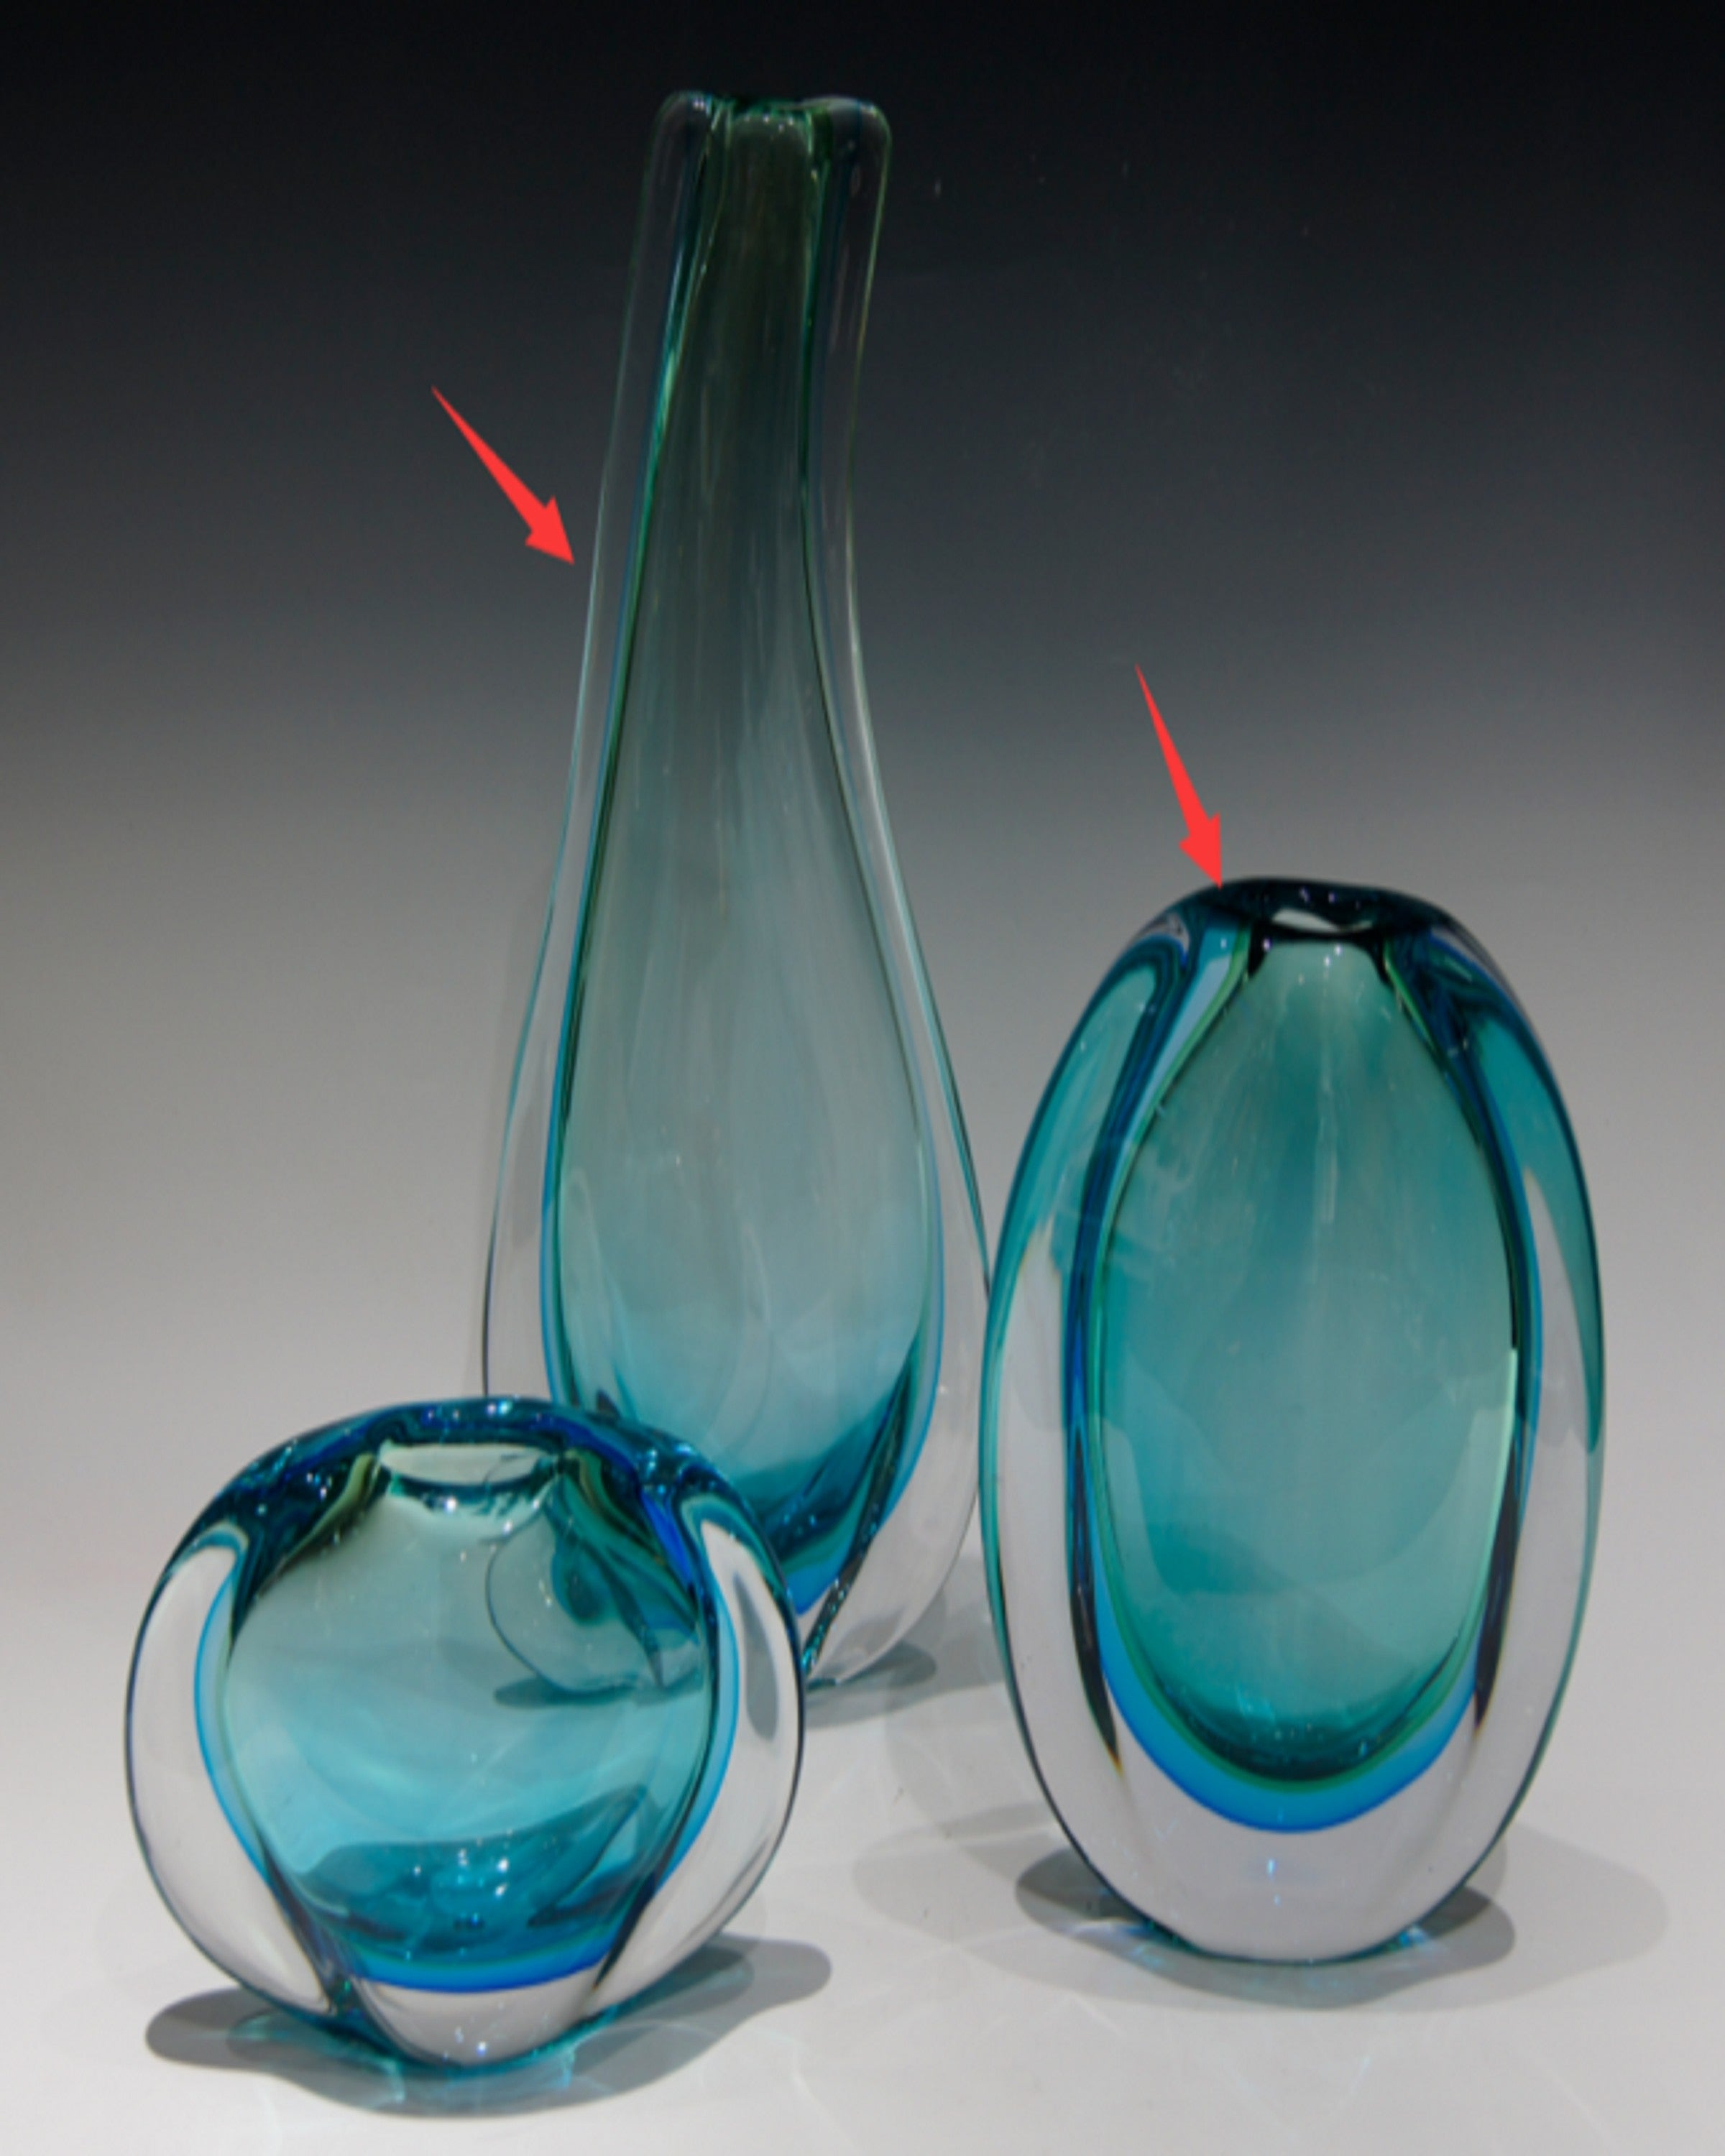 CETUS B BLUE MURANO  VASES (Set Of 3)- ANGIEHOMES.CO ANGIE HOMES